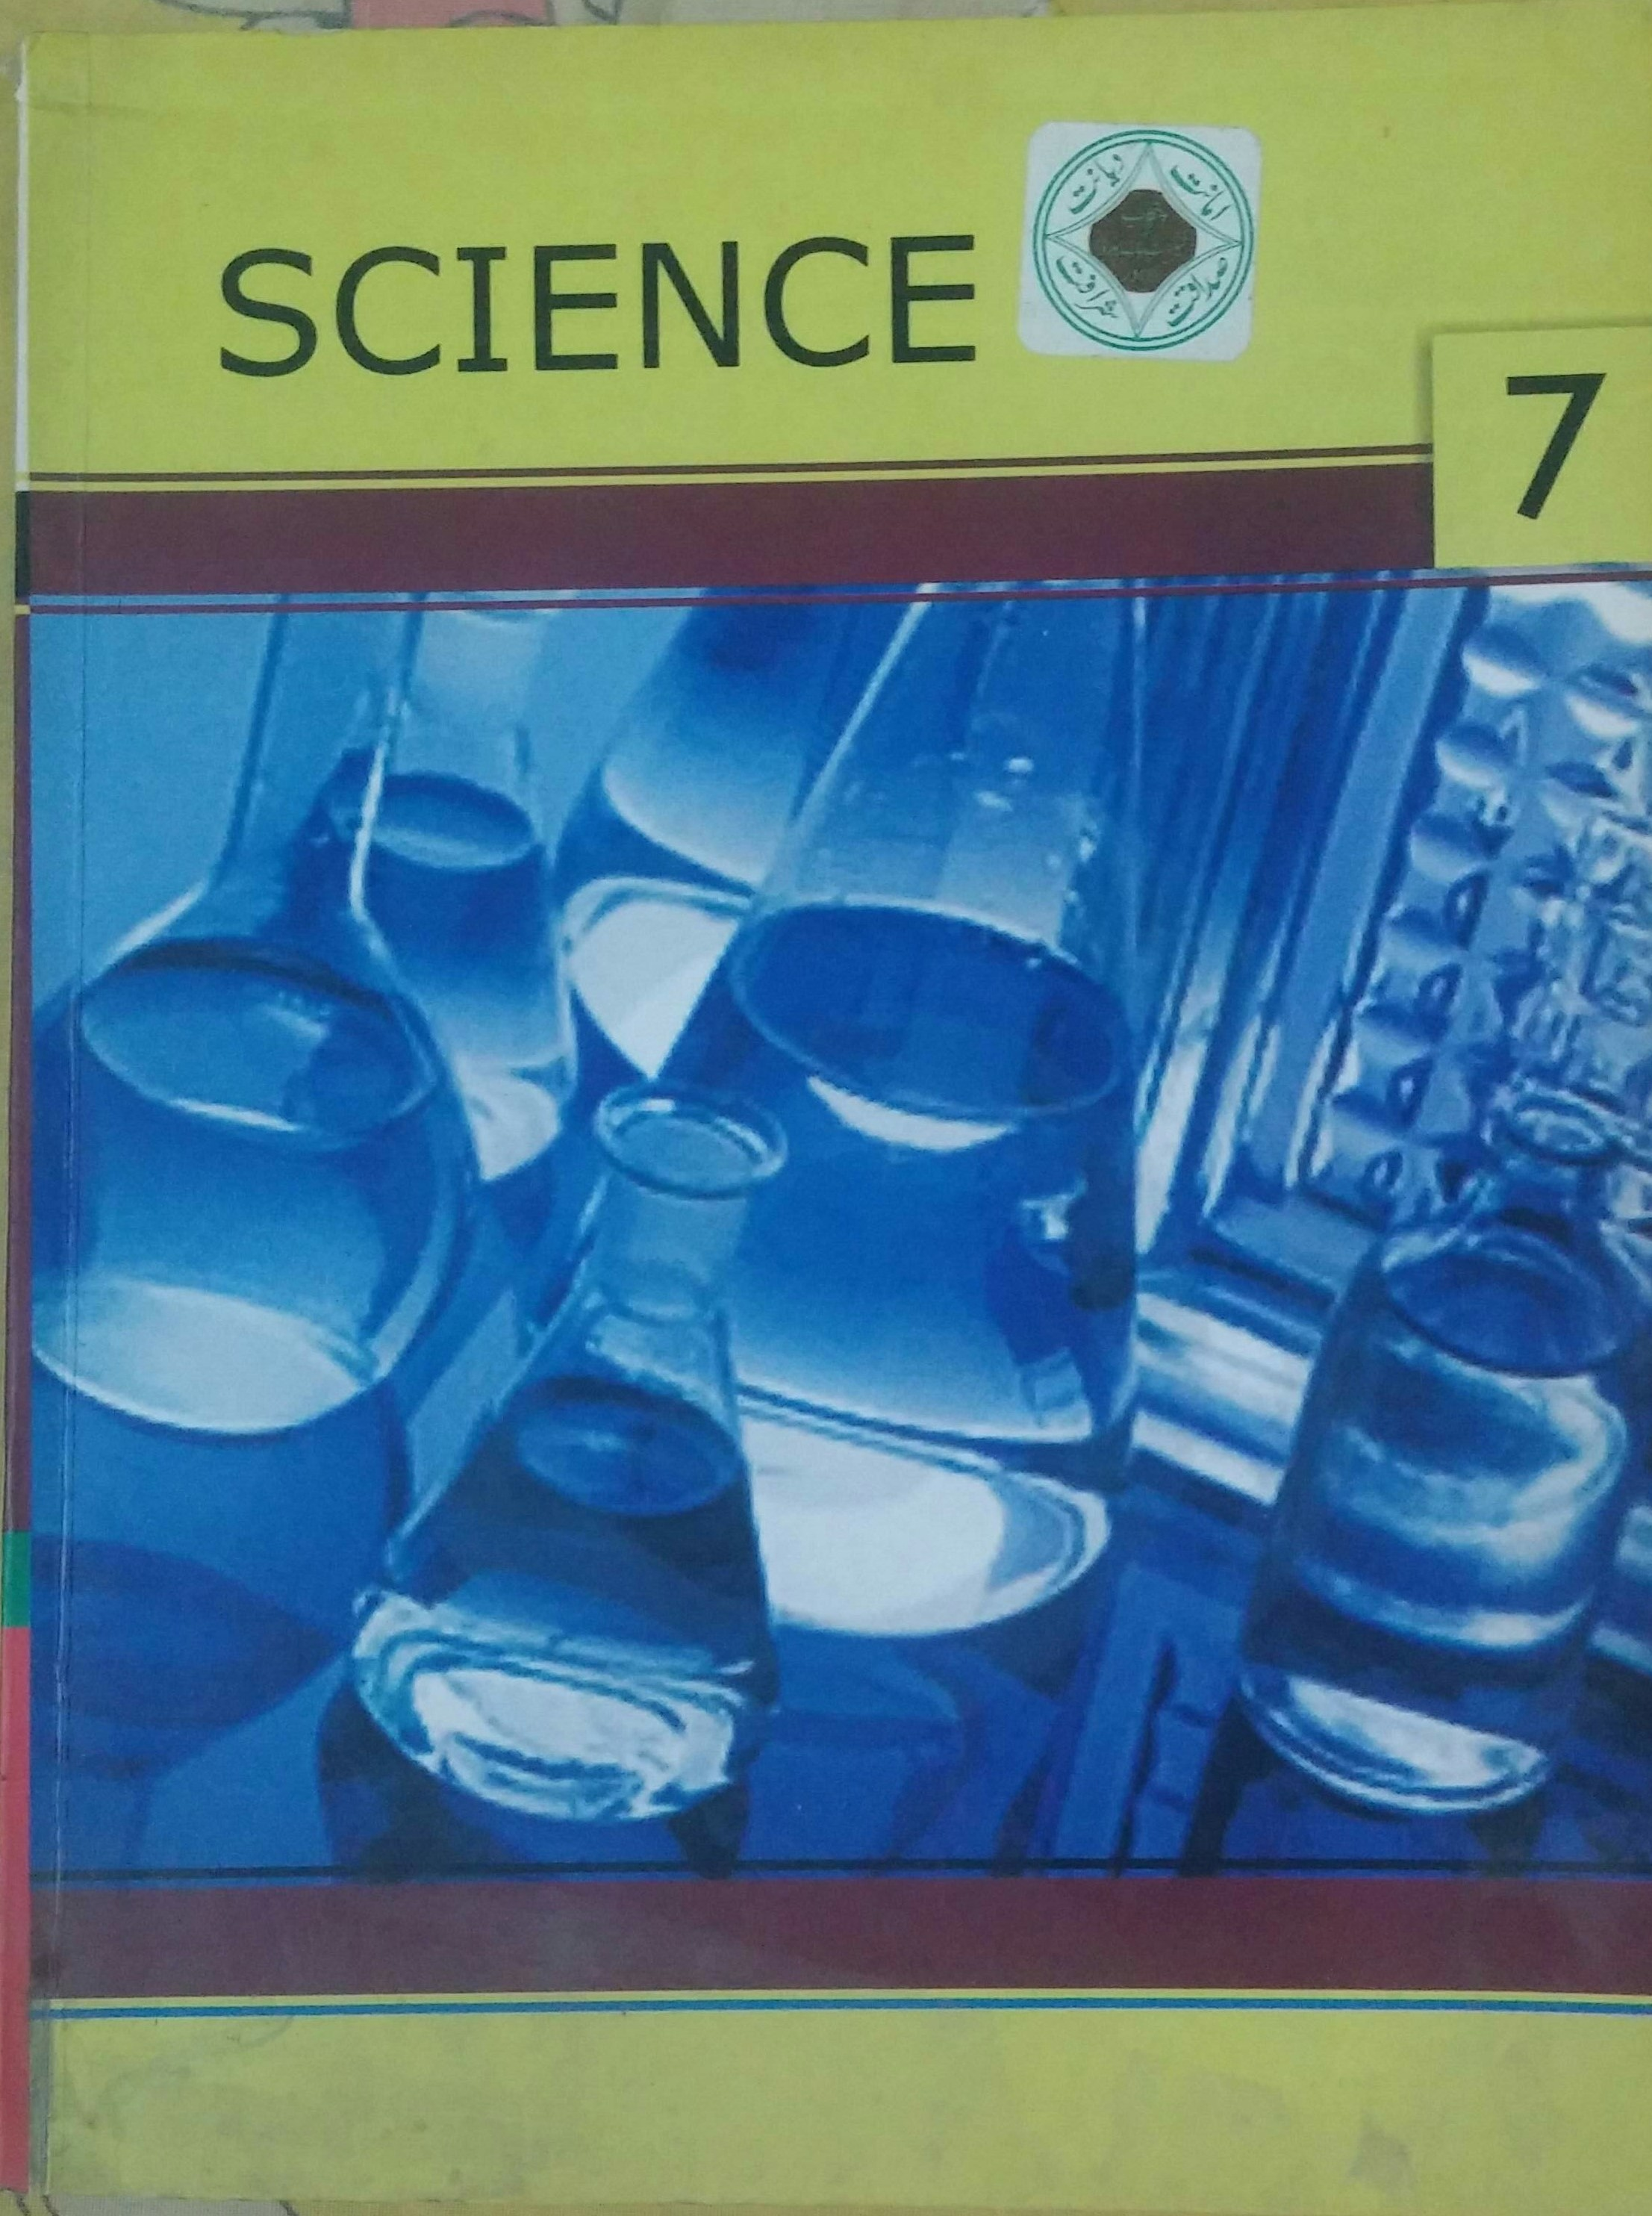 Science 7 Punjab Board